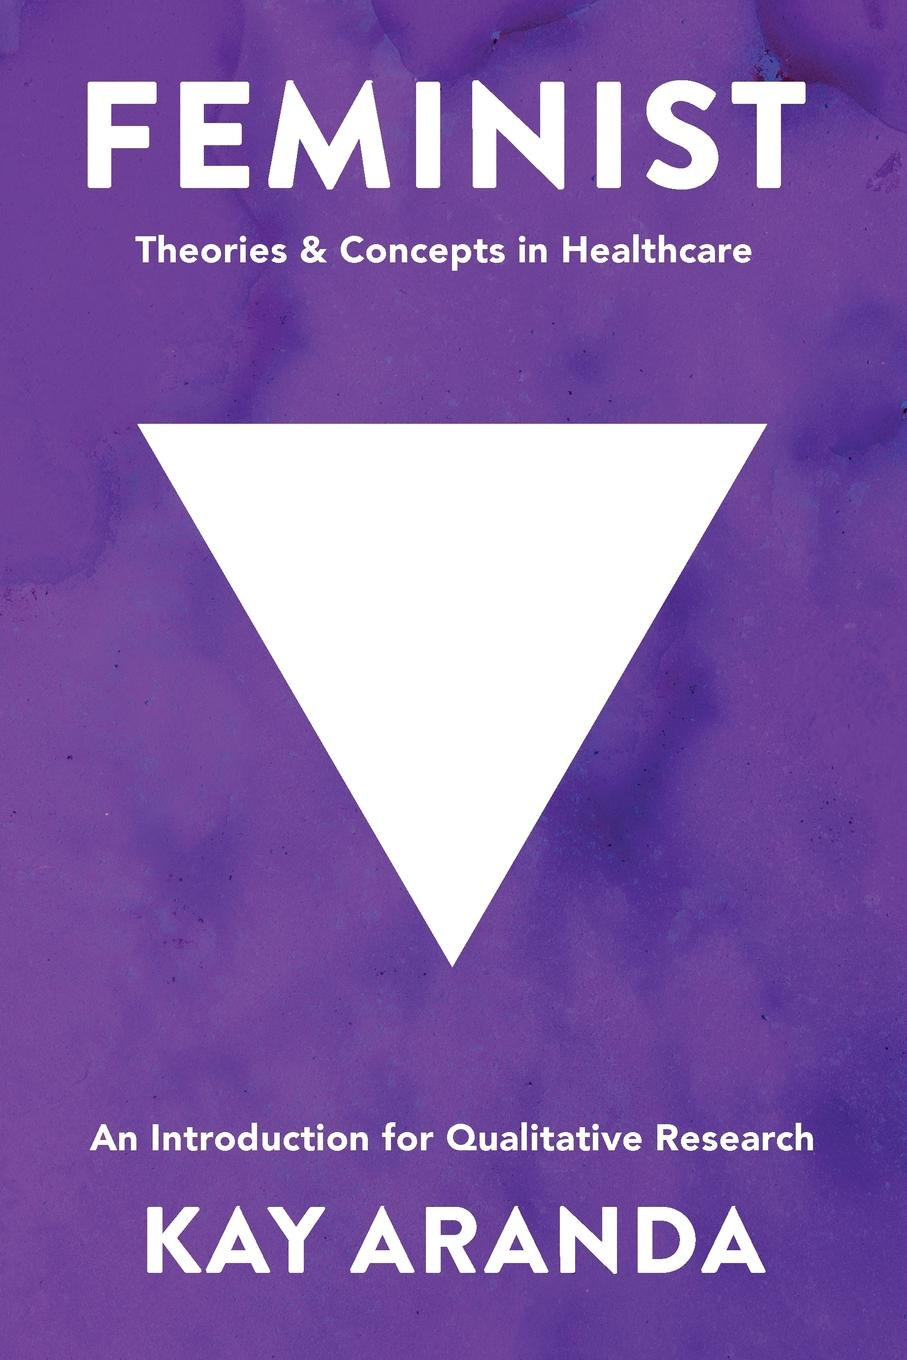 Фото - Kay Aranda Feminist Theories and Concepts in Healthcare. An Introduction for Qualitative Research edward wolf l nanophysics and nanotechnology an introduction to modern concepts in nanoscience